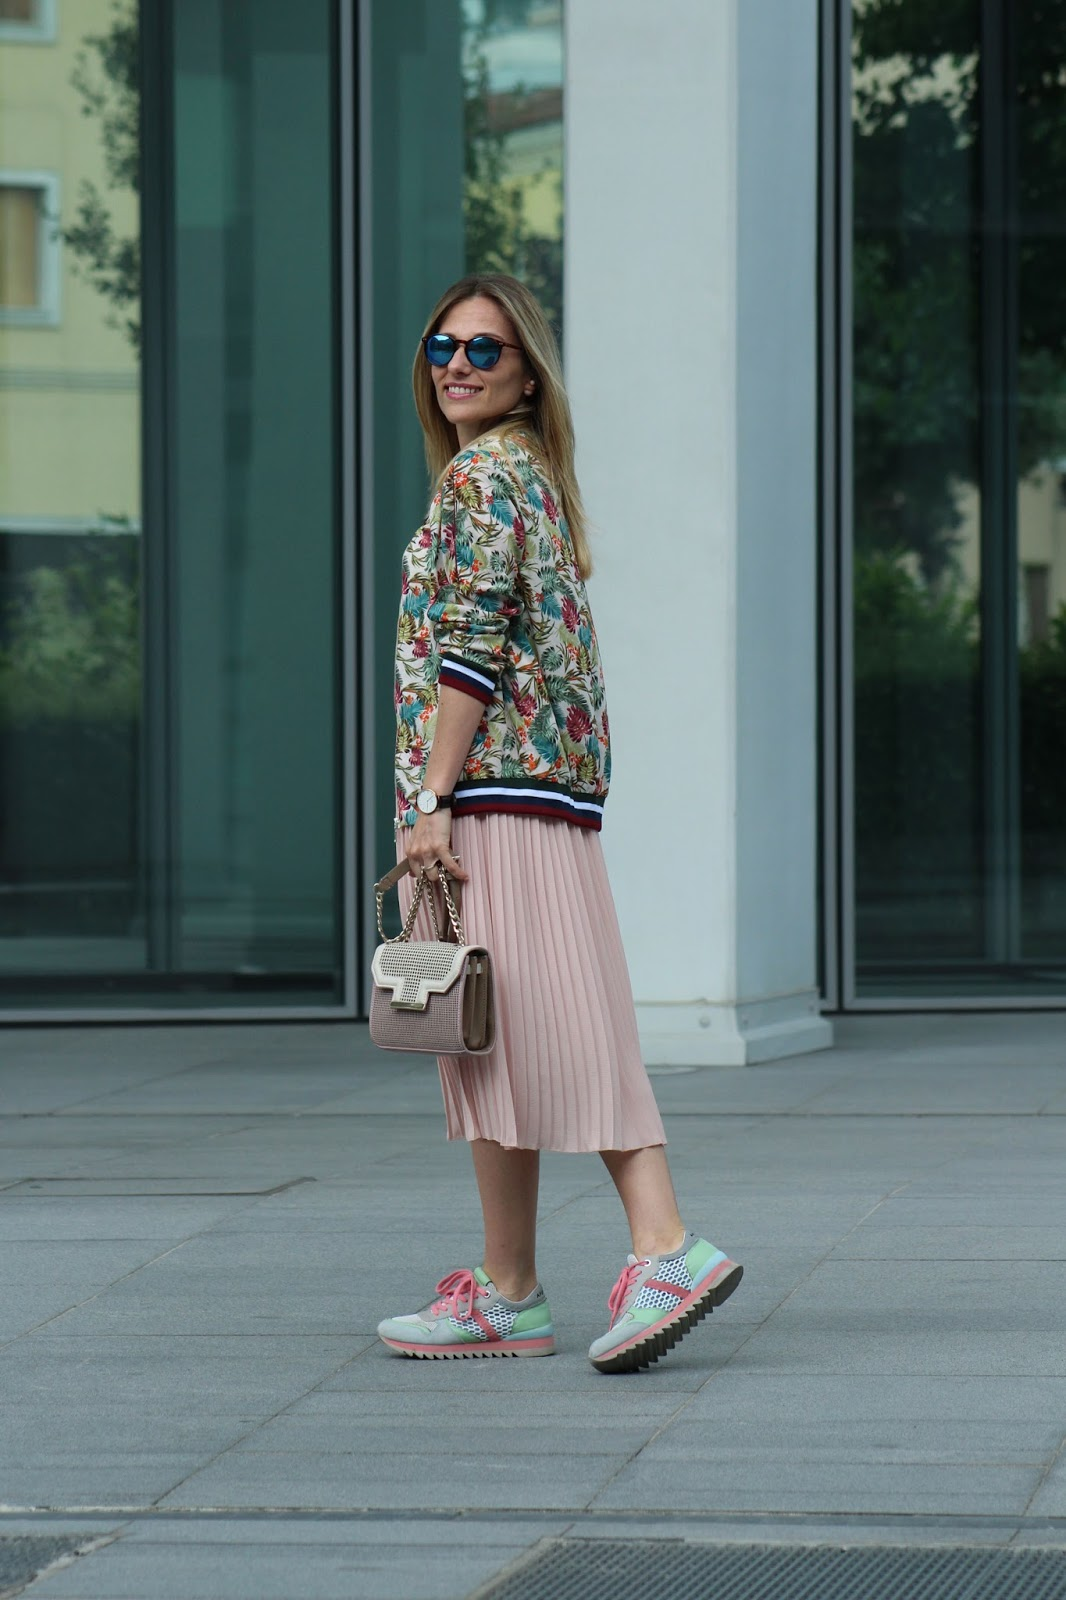 Eniwhere Fashion - Gucci inspired ootd